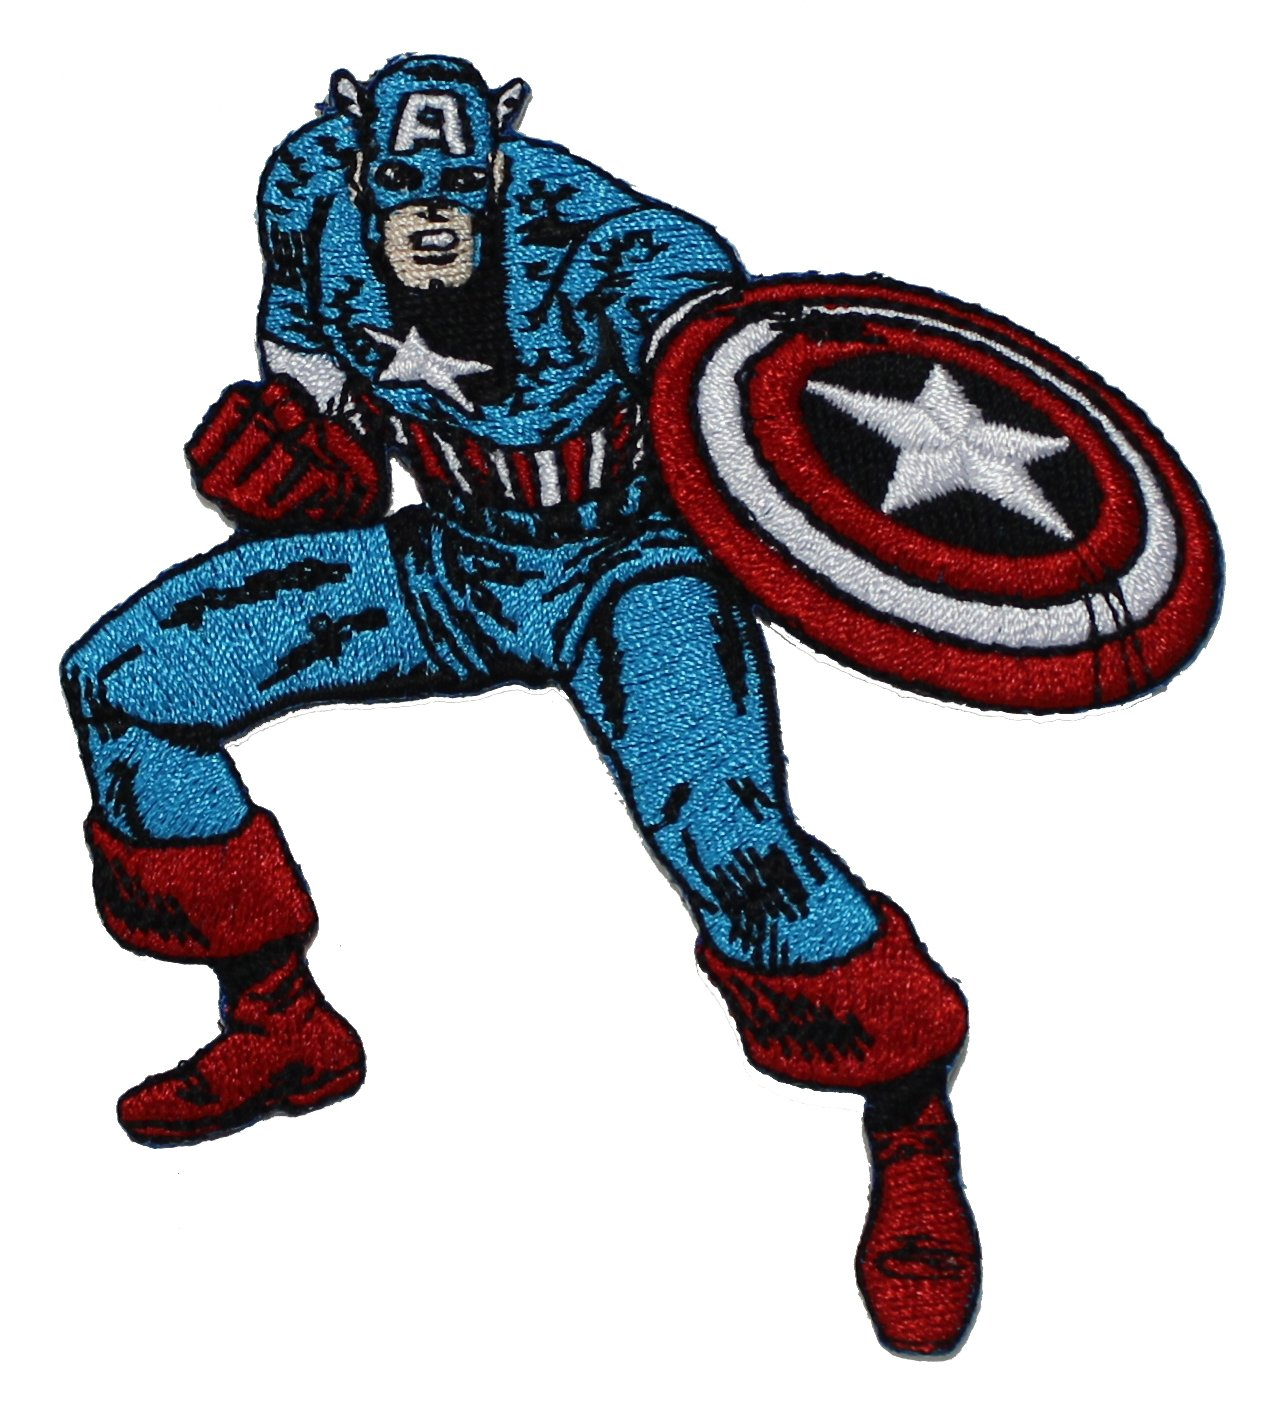 CAPTAIN AMERICA'S PATCH, Officially Licensed Marvel's The Avengers Comic Superhero Artwork, Iron-On / Sew-On, 3.75